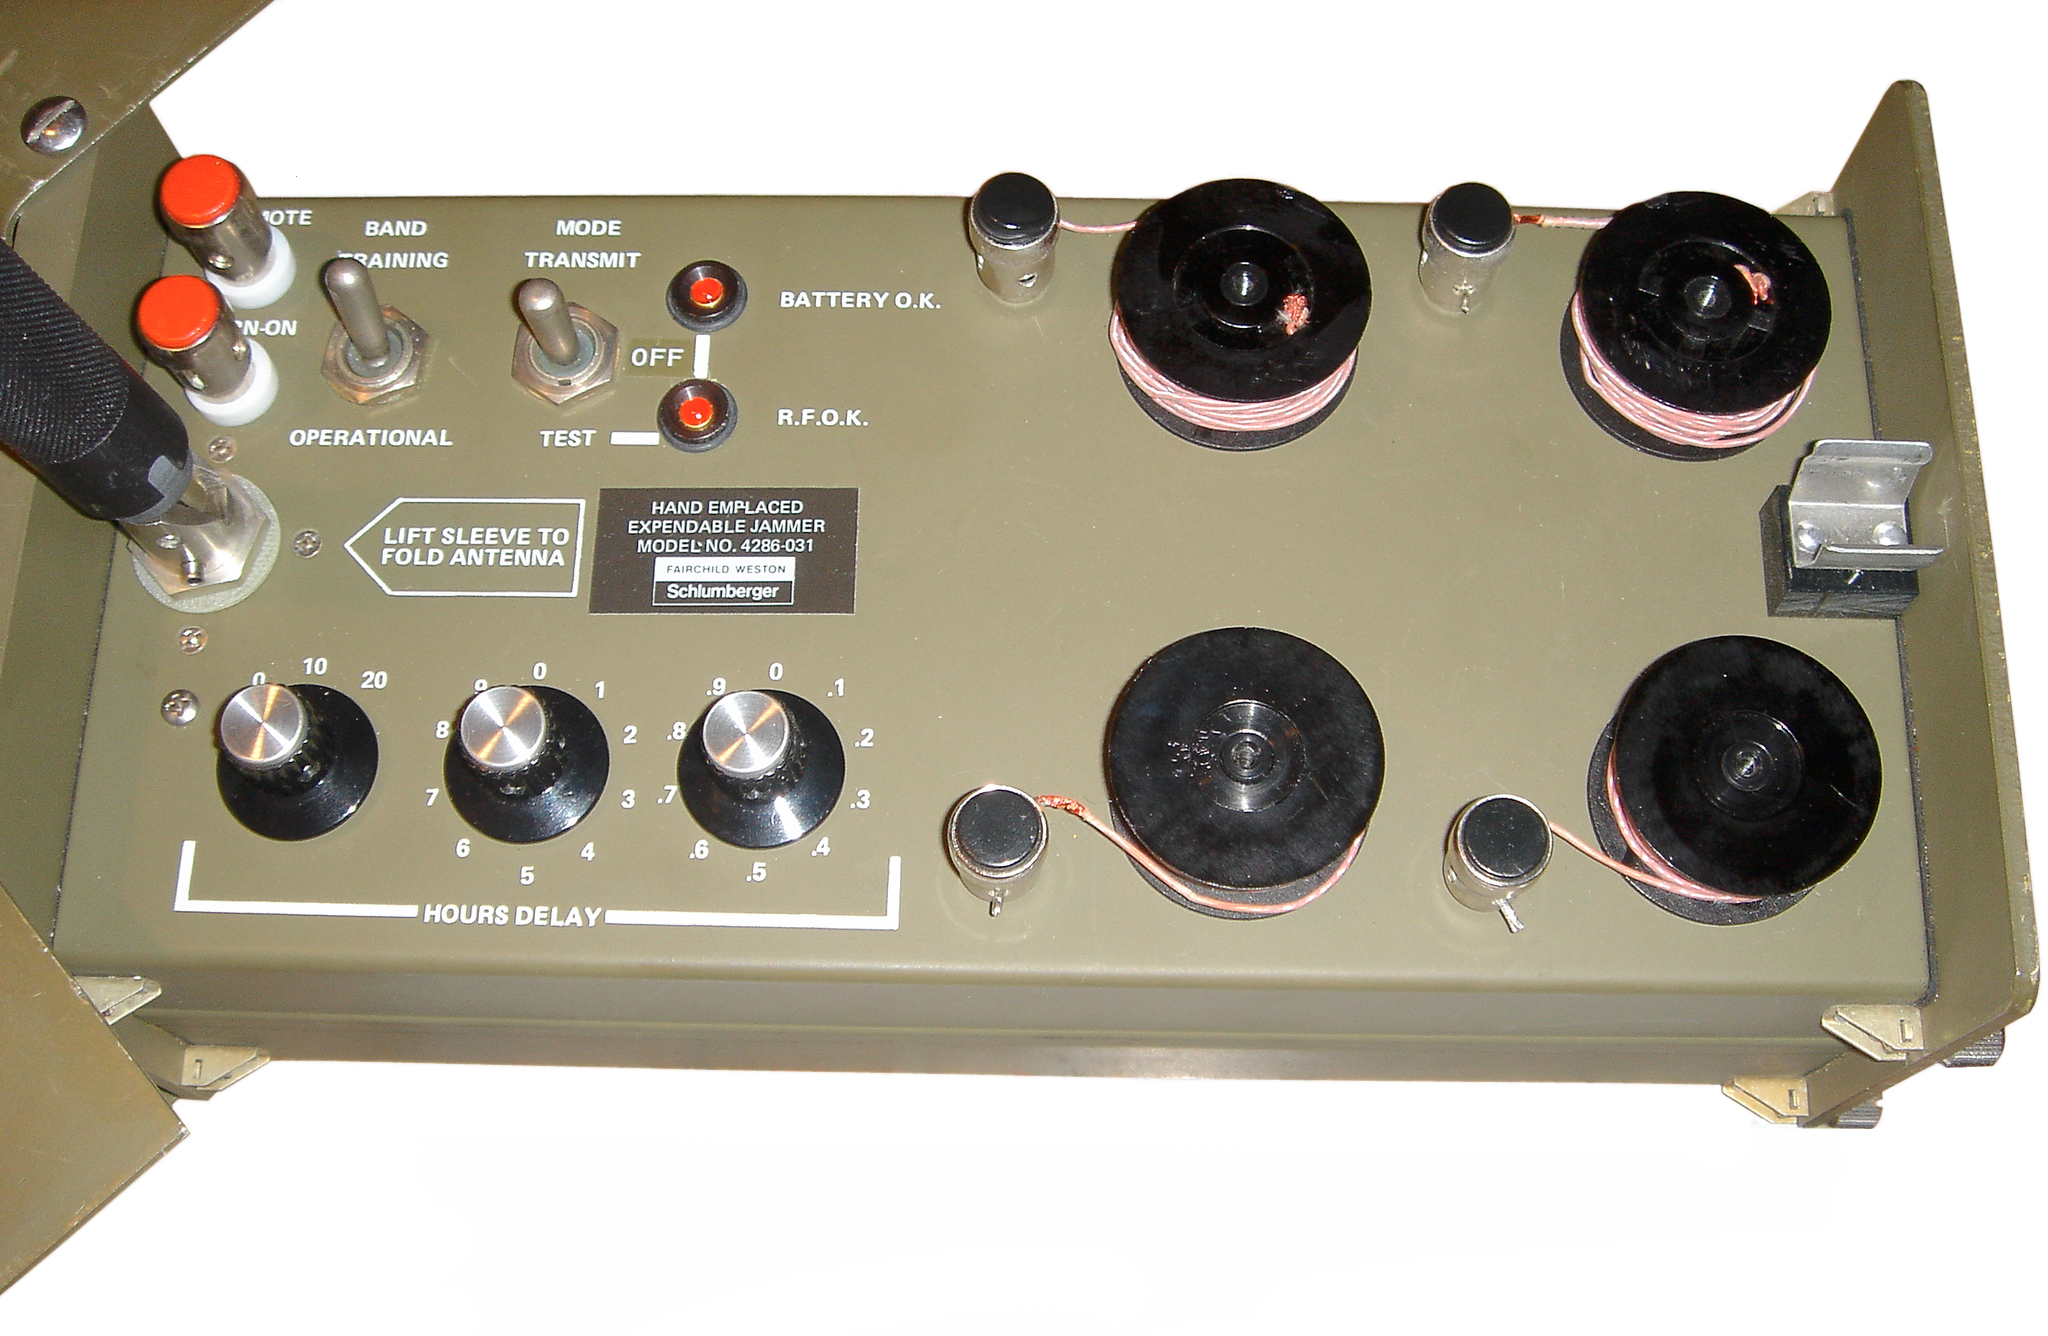 Hexjam Hand Emplaced Expendable Jammer Fm Radio Control Panel